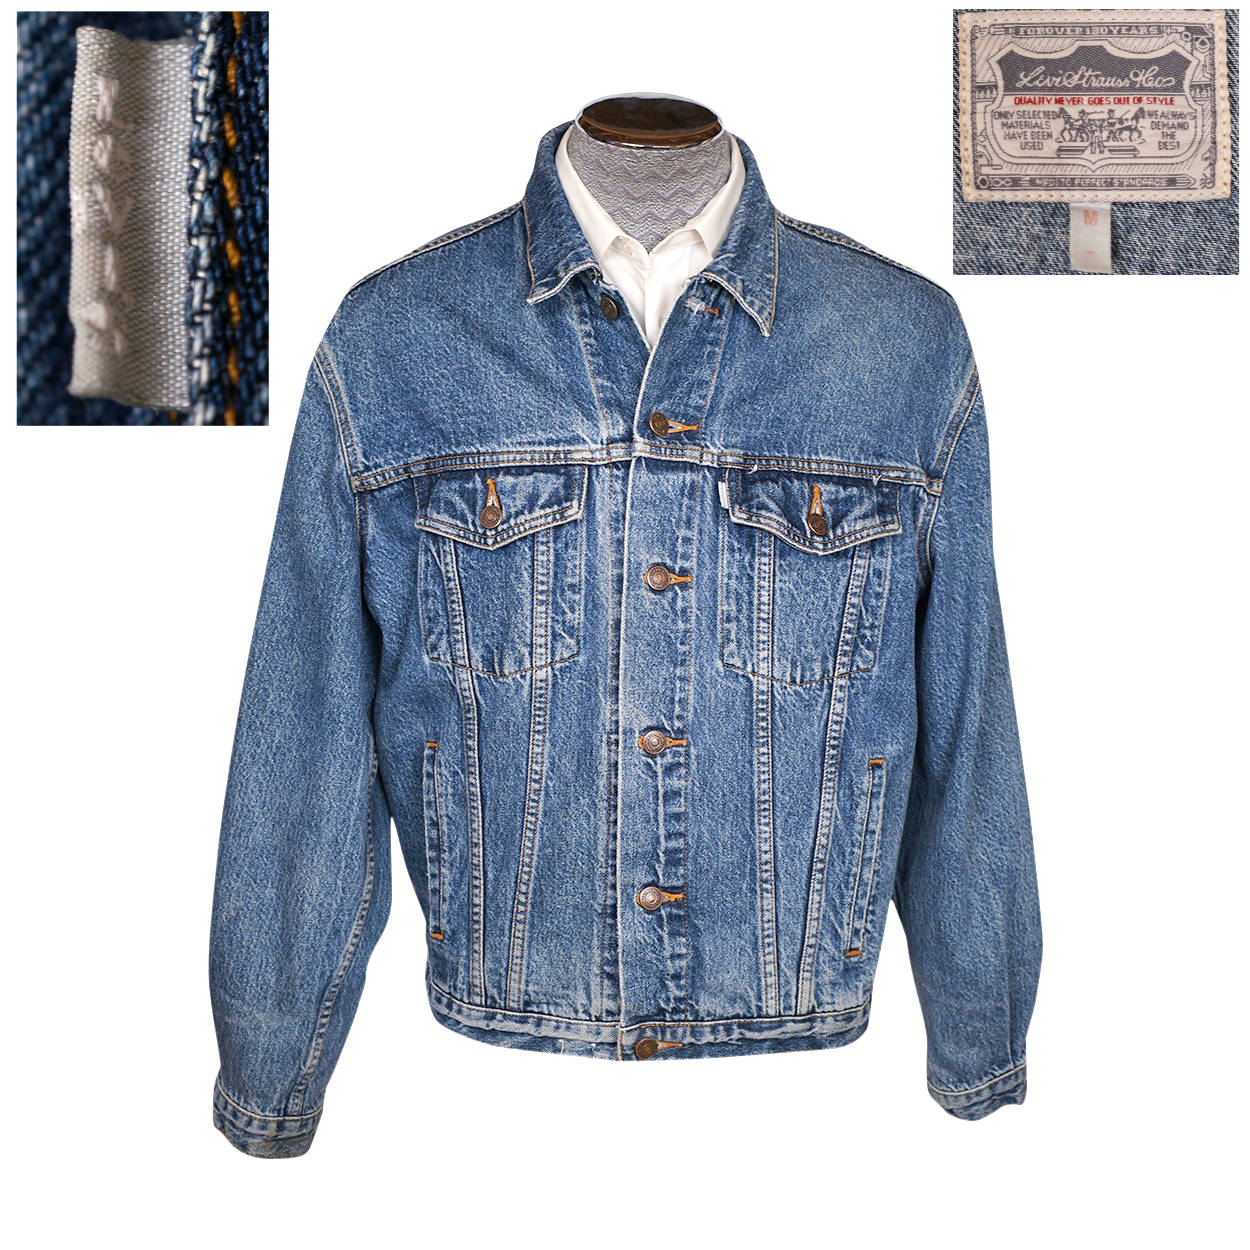 4036d369d4 Levis Denim Trucker Jean Jacket SilverTab Mens M 70507